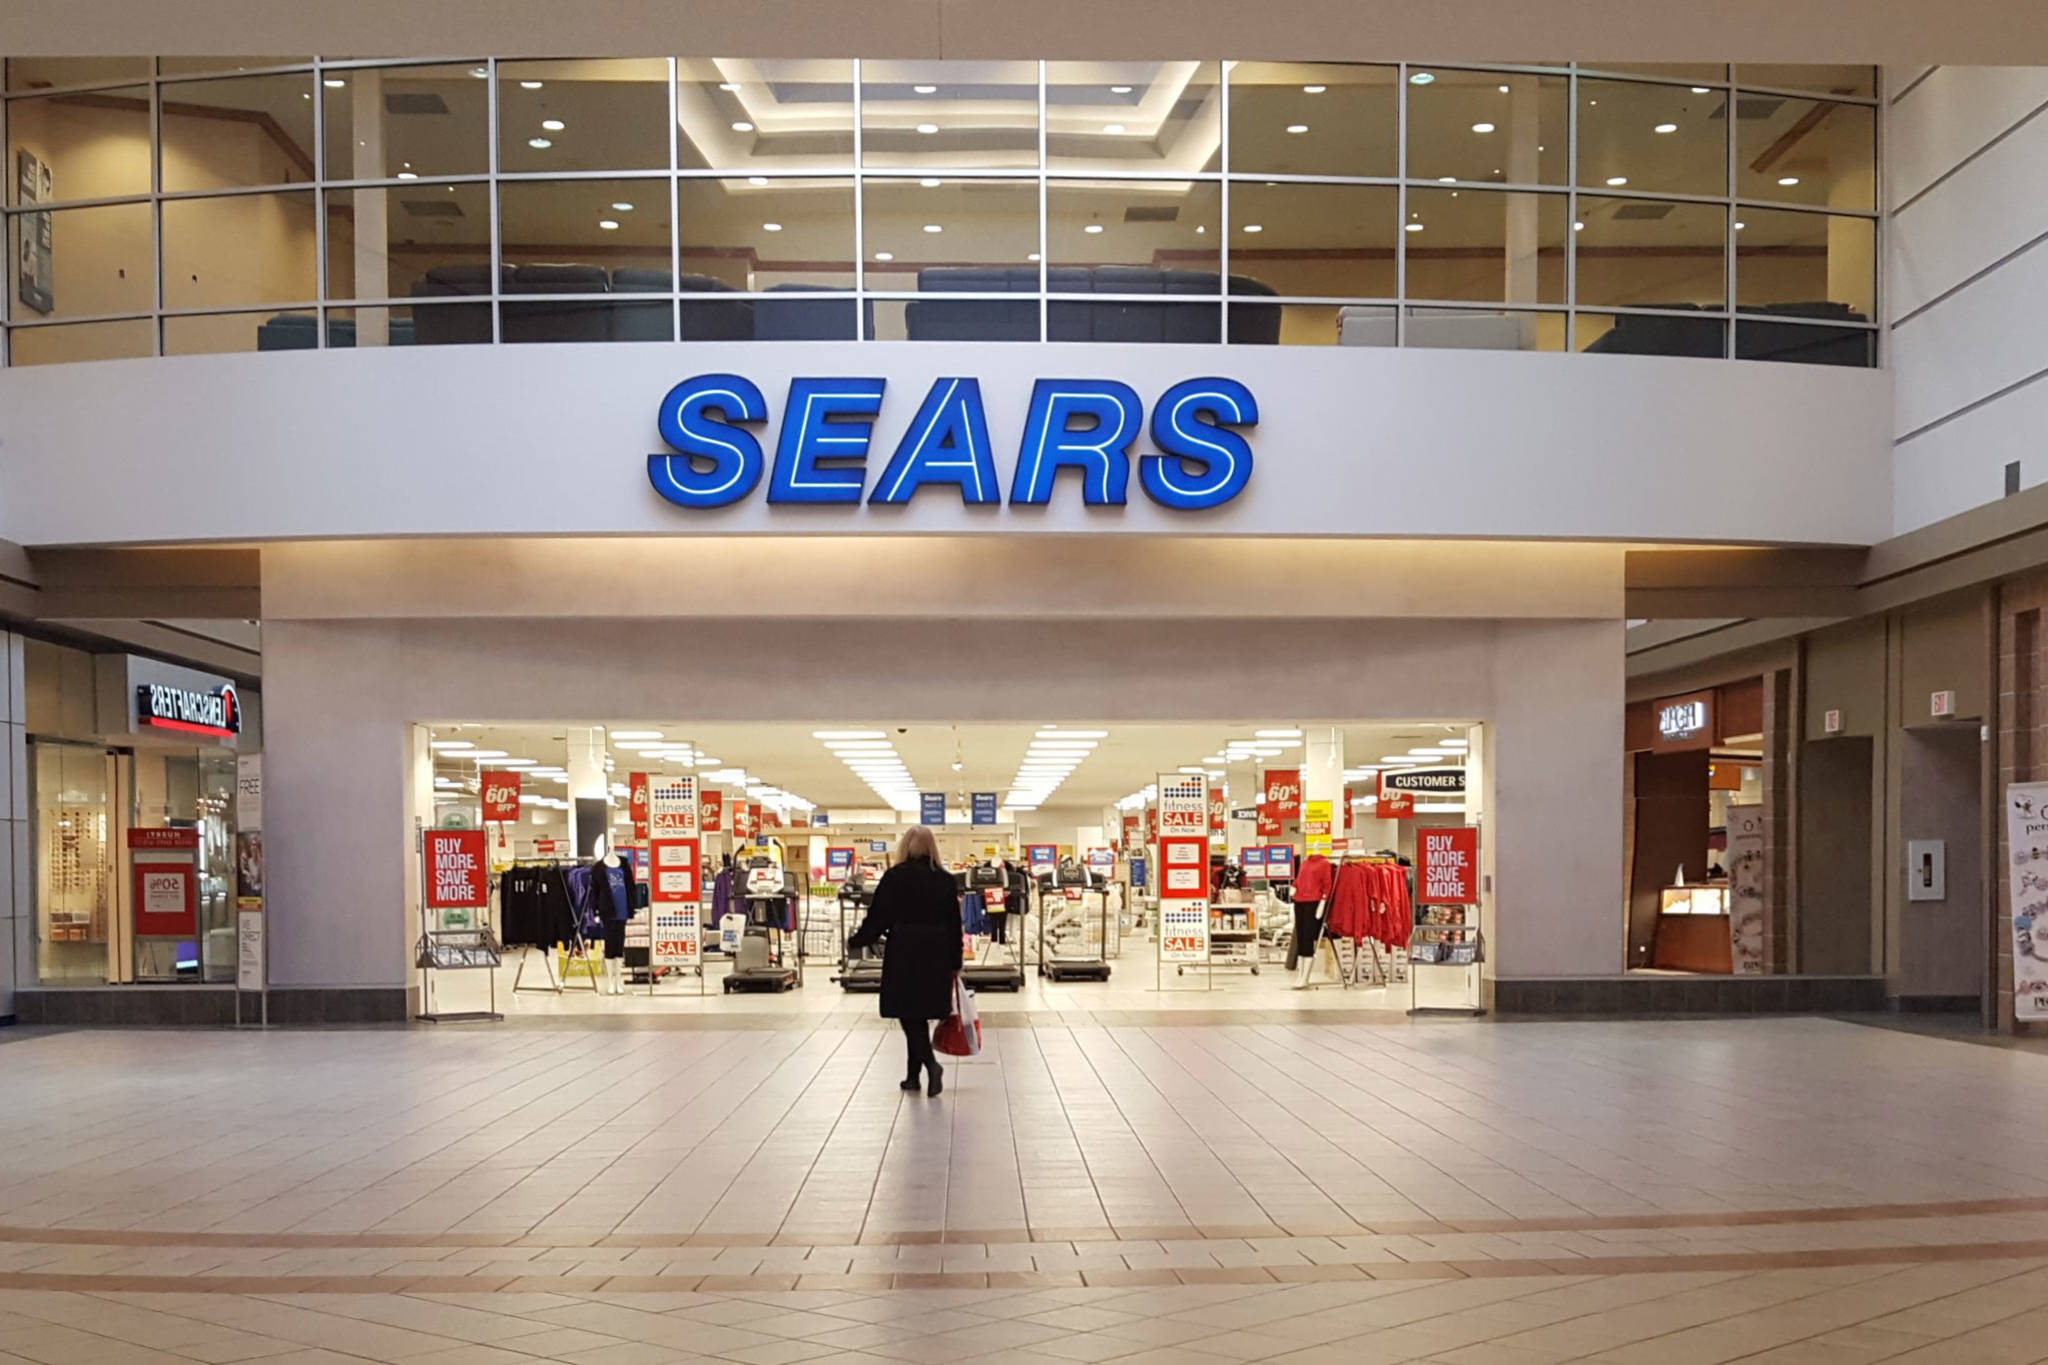 20181010-sears-canada-closing.jpg-resize_then_crop-_frame_bg_color_FFF-h_1365-gravity_center-q_70-preserve_ratio_true-w_2048_